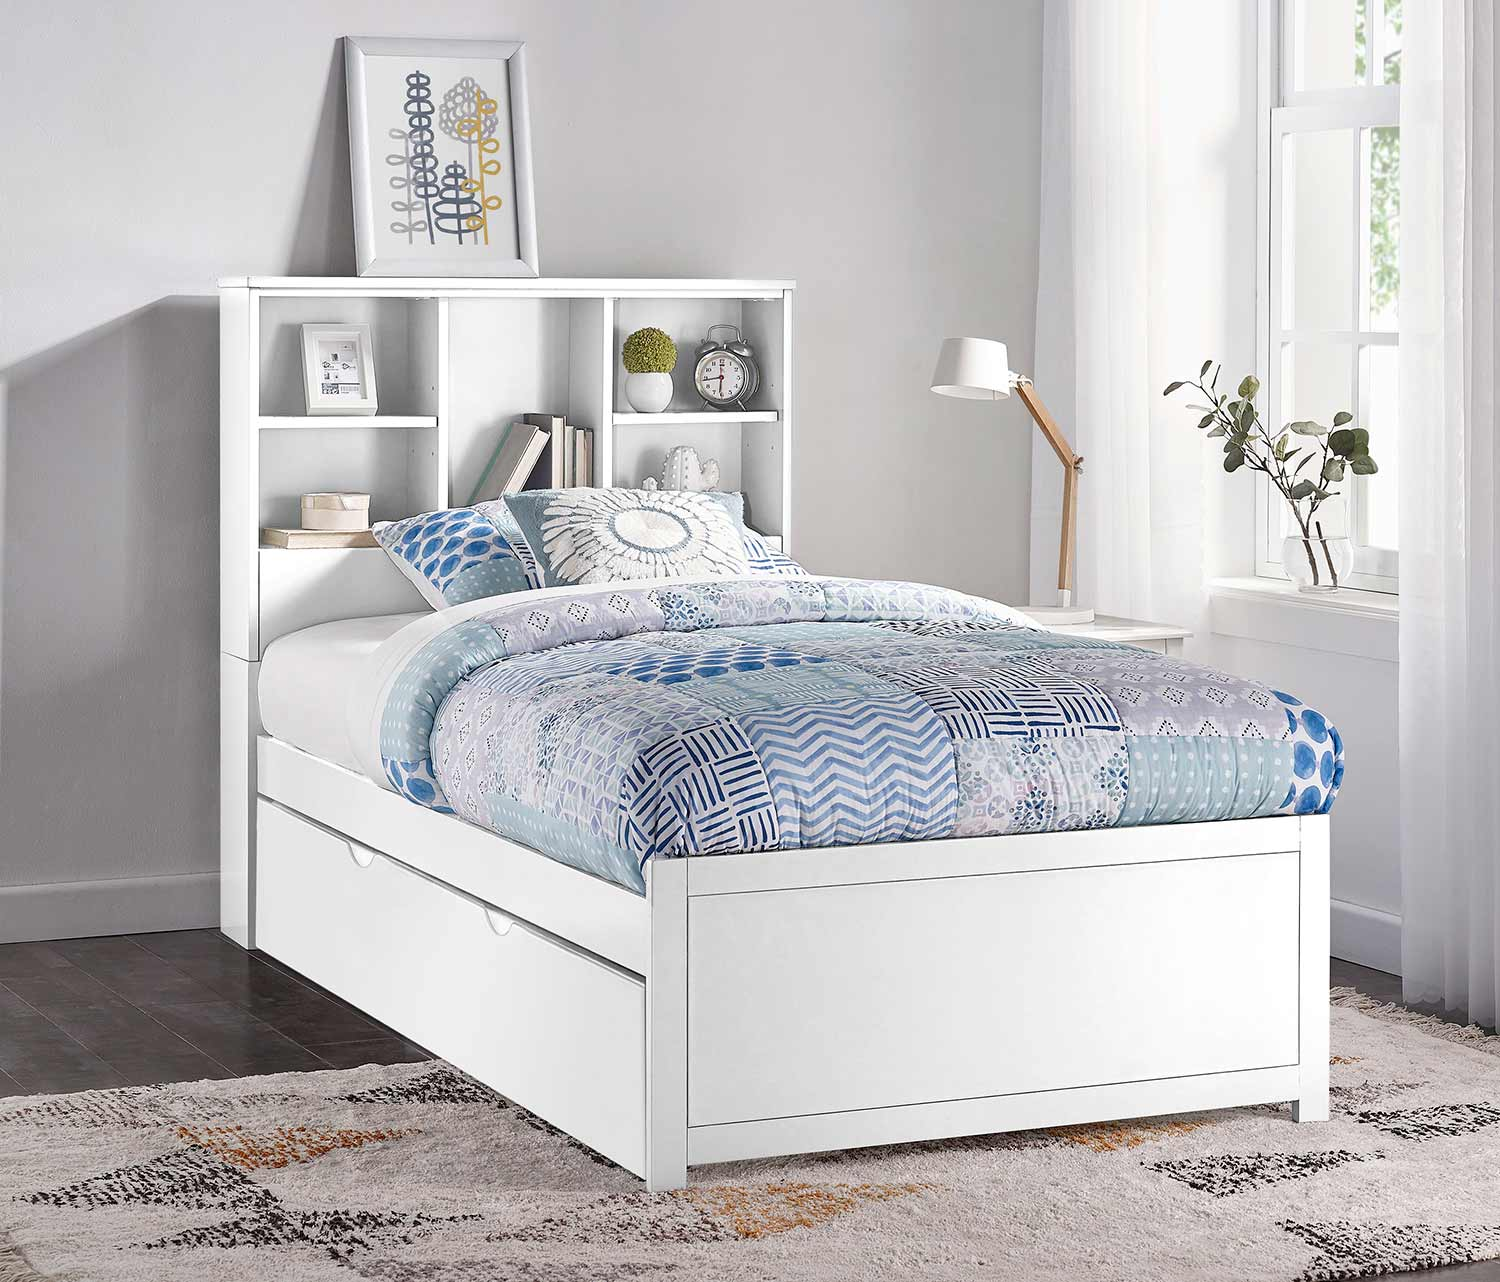 Hillsdale Caspian Twin Bookcase Bed with Trundle Unit - White